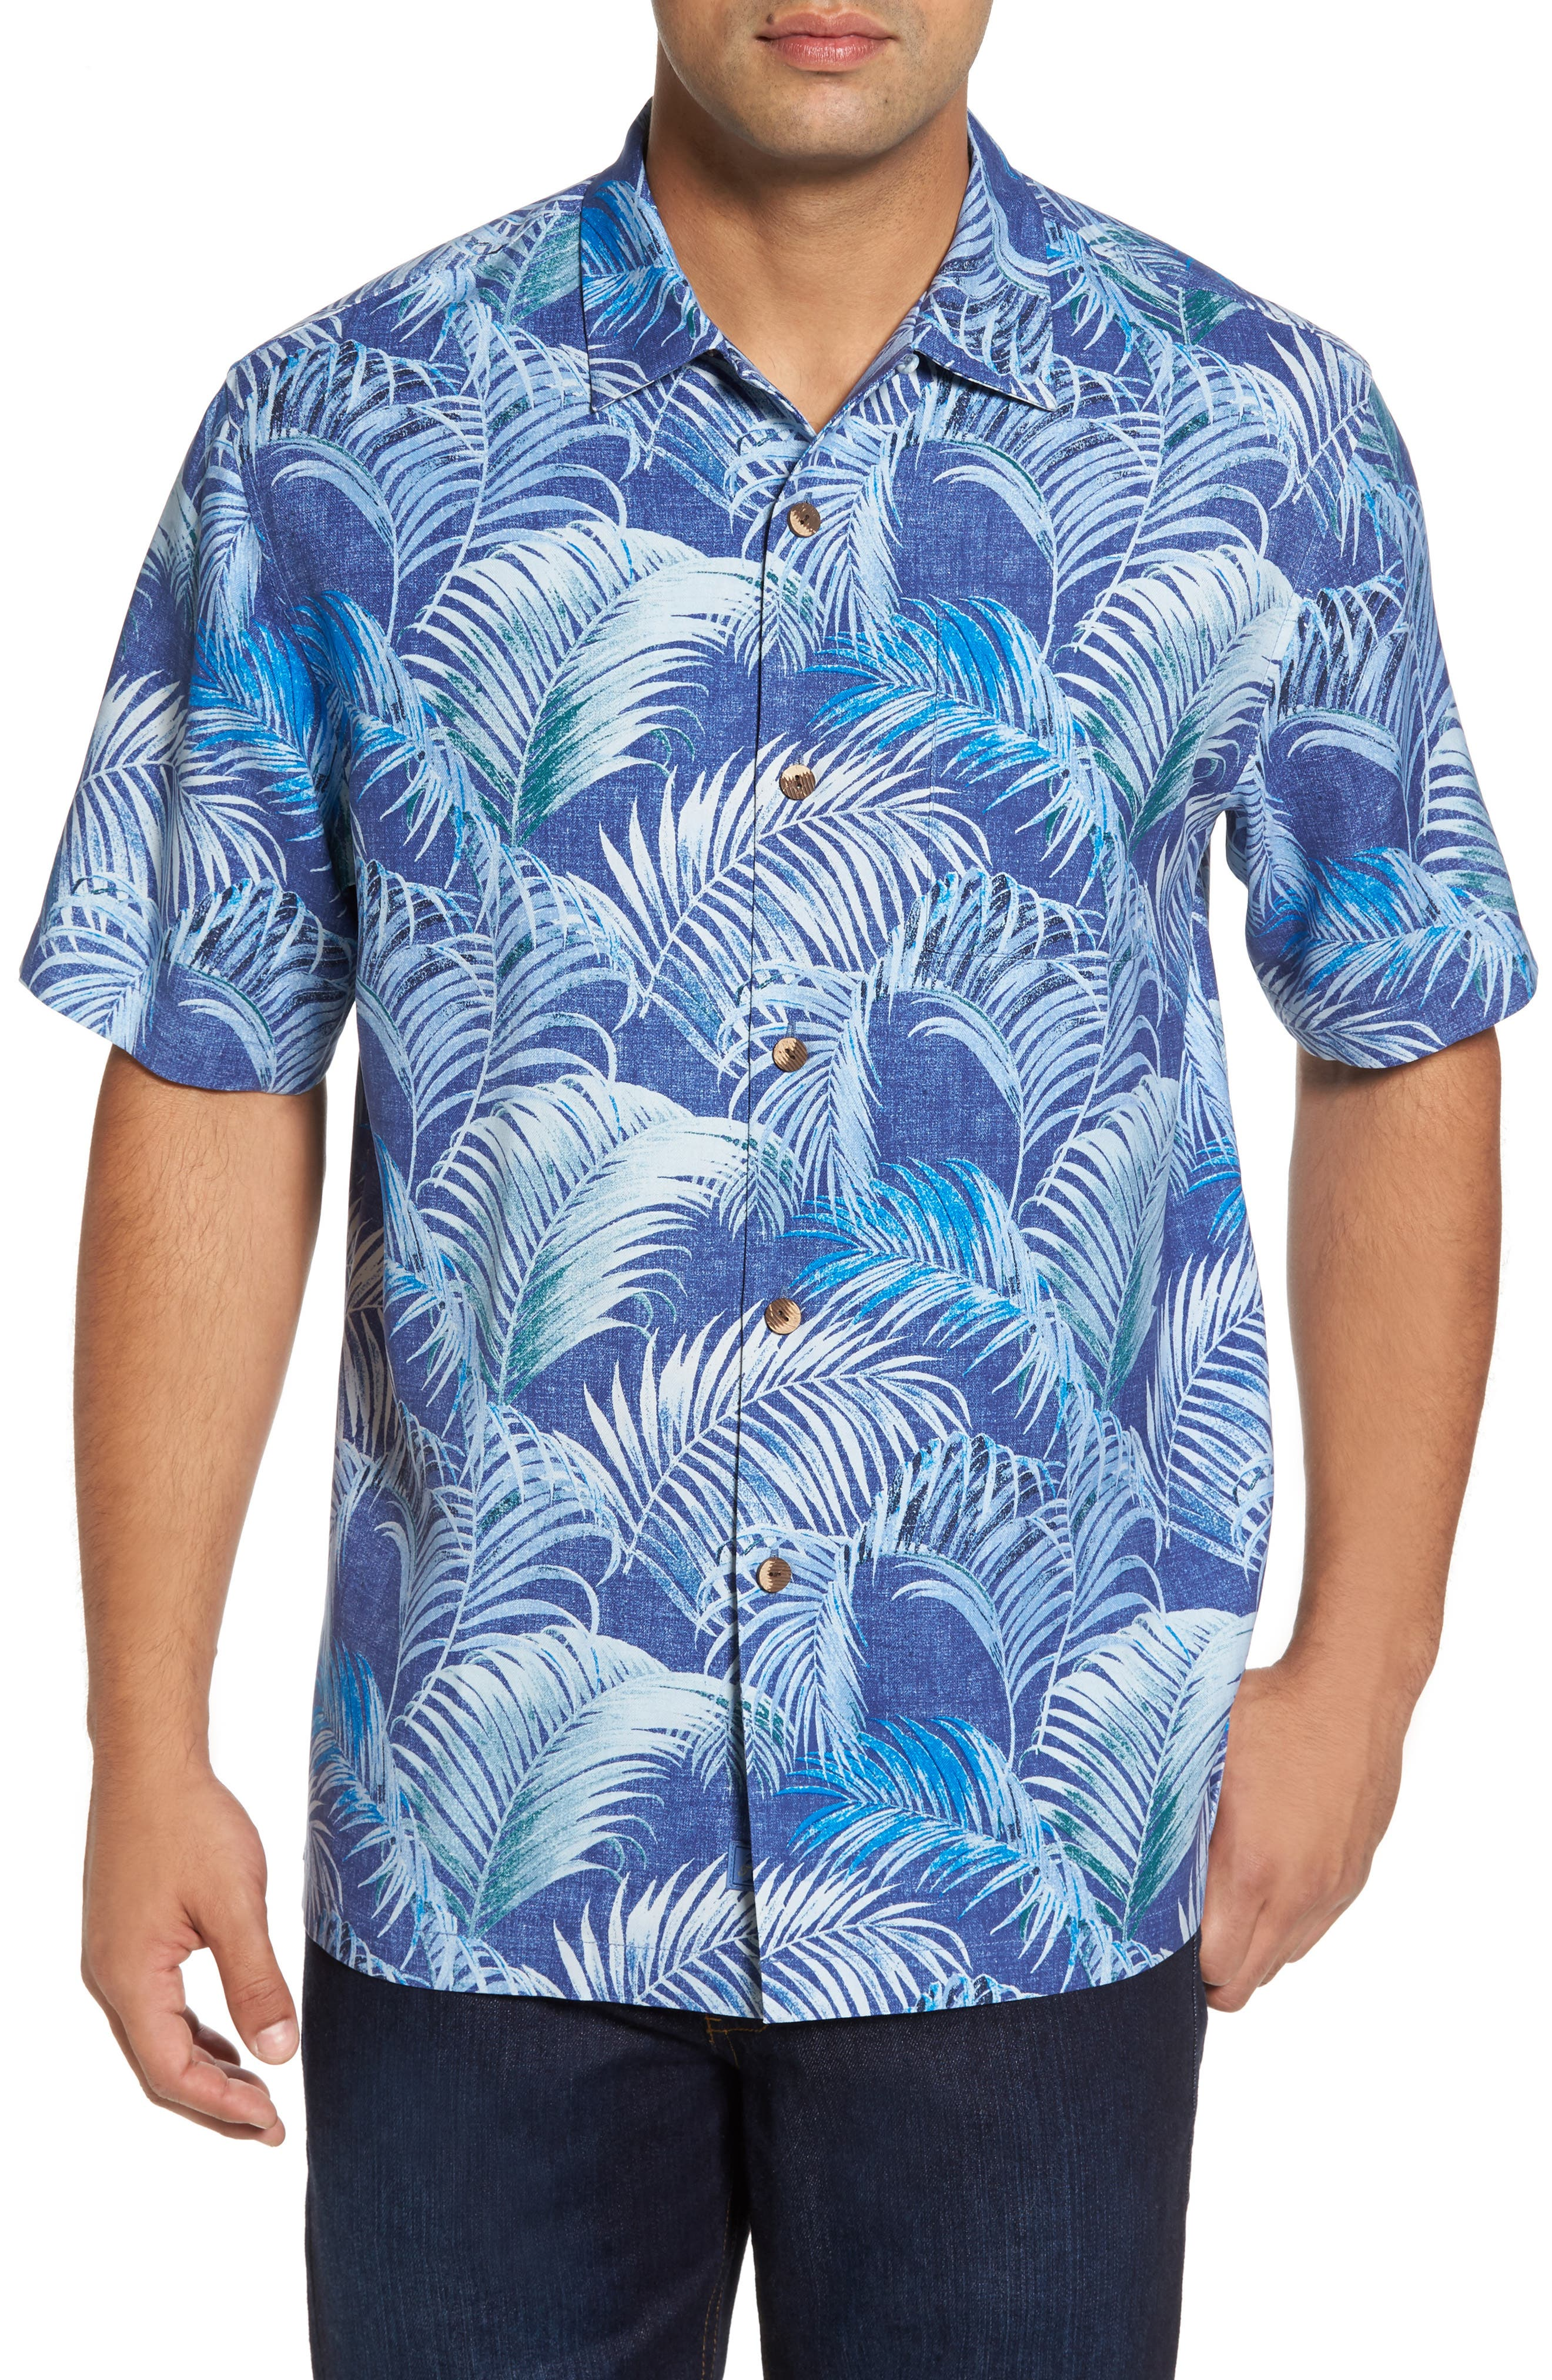 Garden of Hope and Courage Silk Camp Shirt,                         Main,                         color, 400